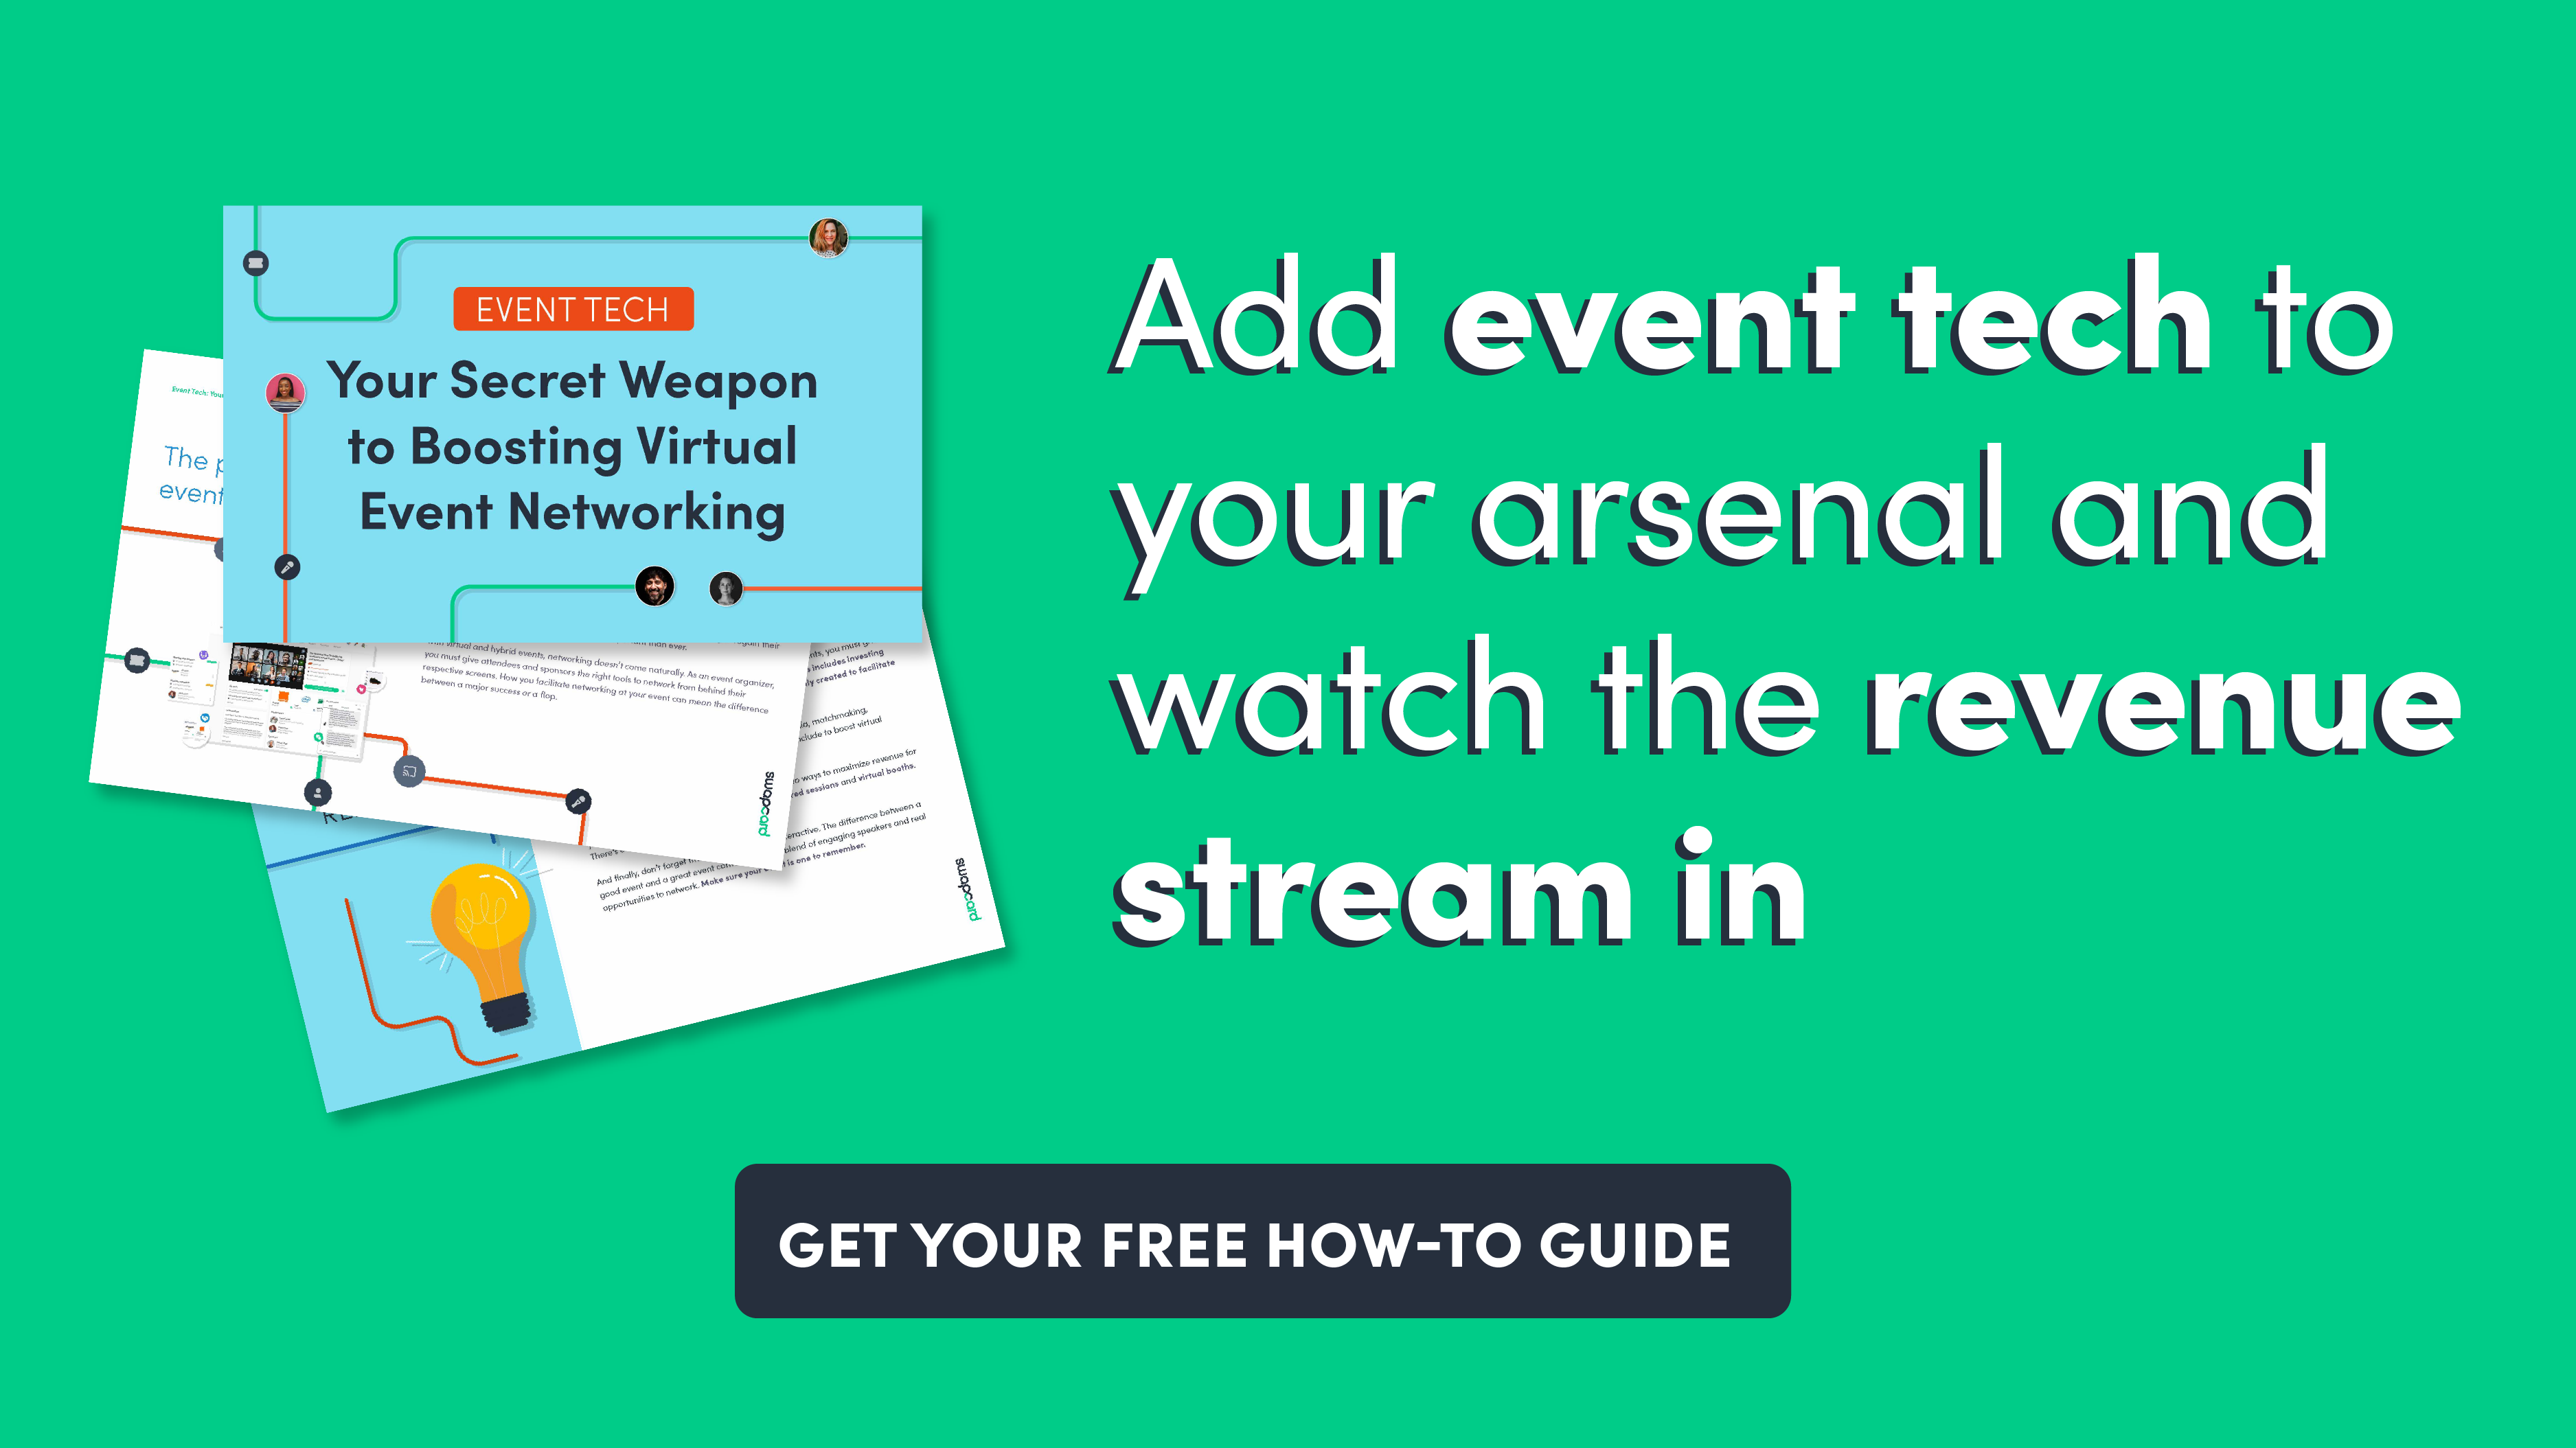 Event Tech: Your Secret Weapon to Boosting Virtual Event Networking